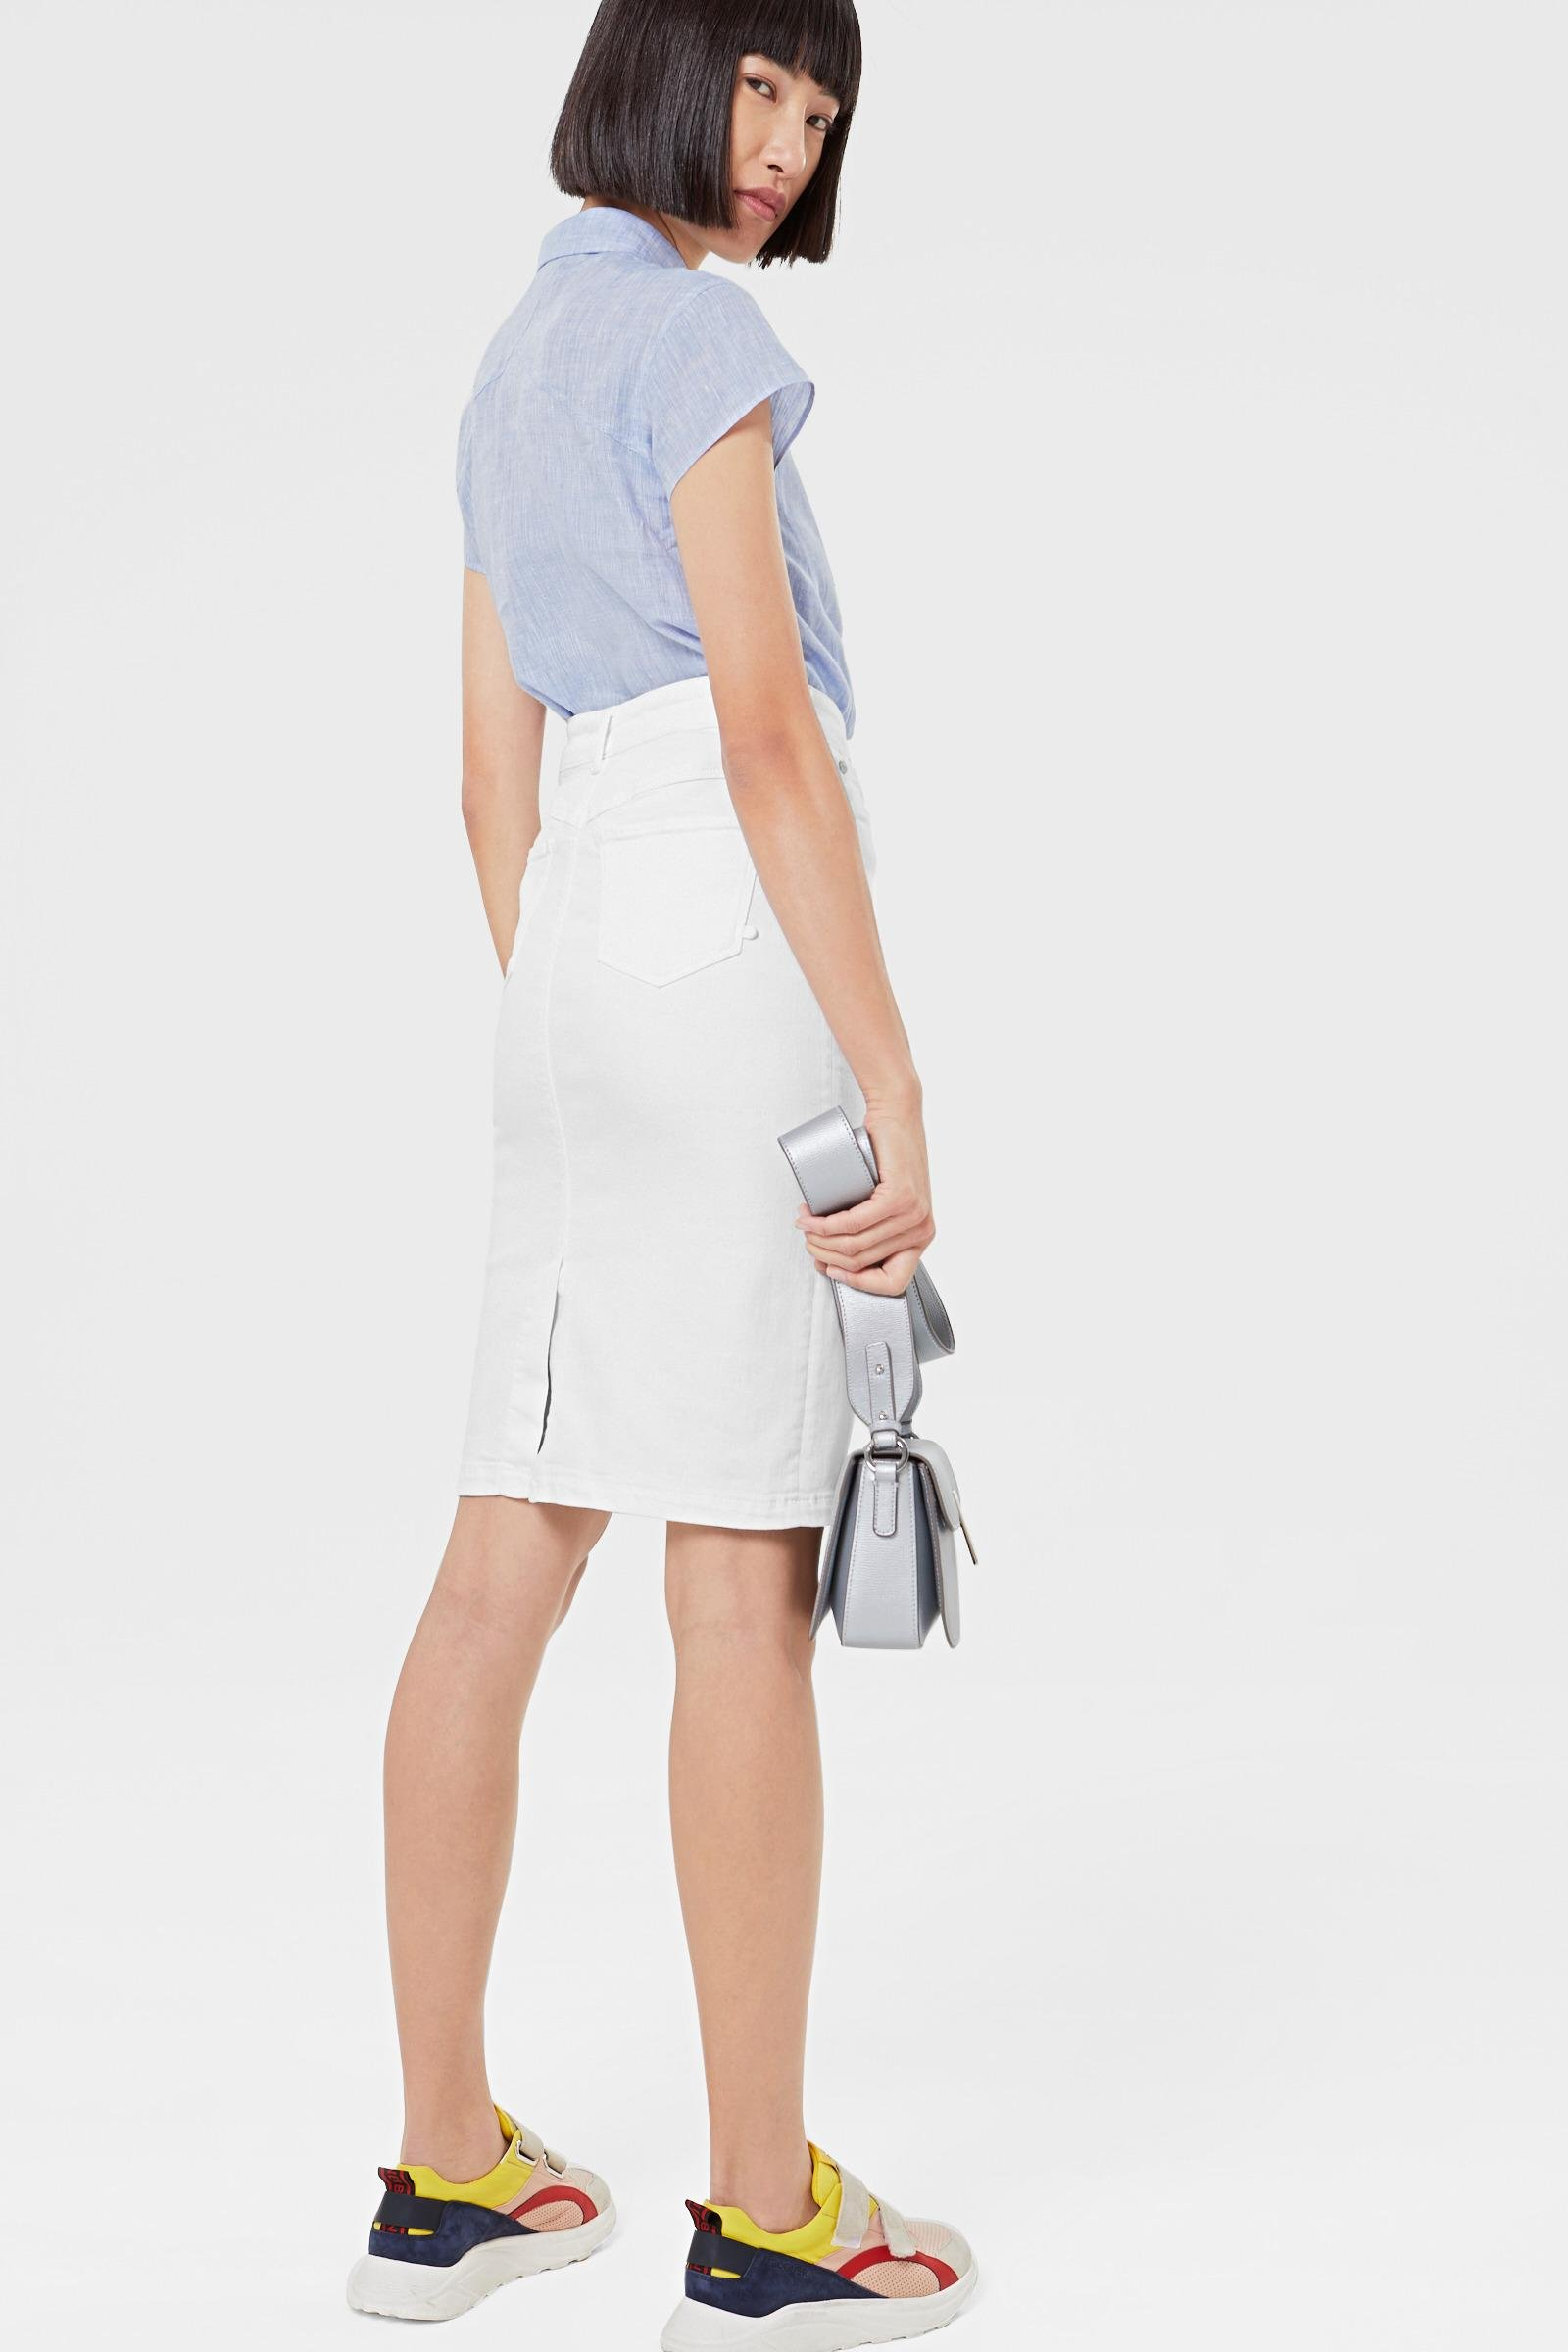 7efe7a686a3273 Bogner - Jodie Jean Skirt In White - Lyst. View fullscreen